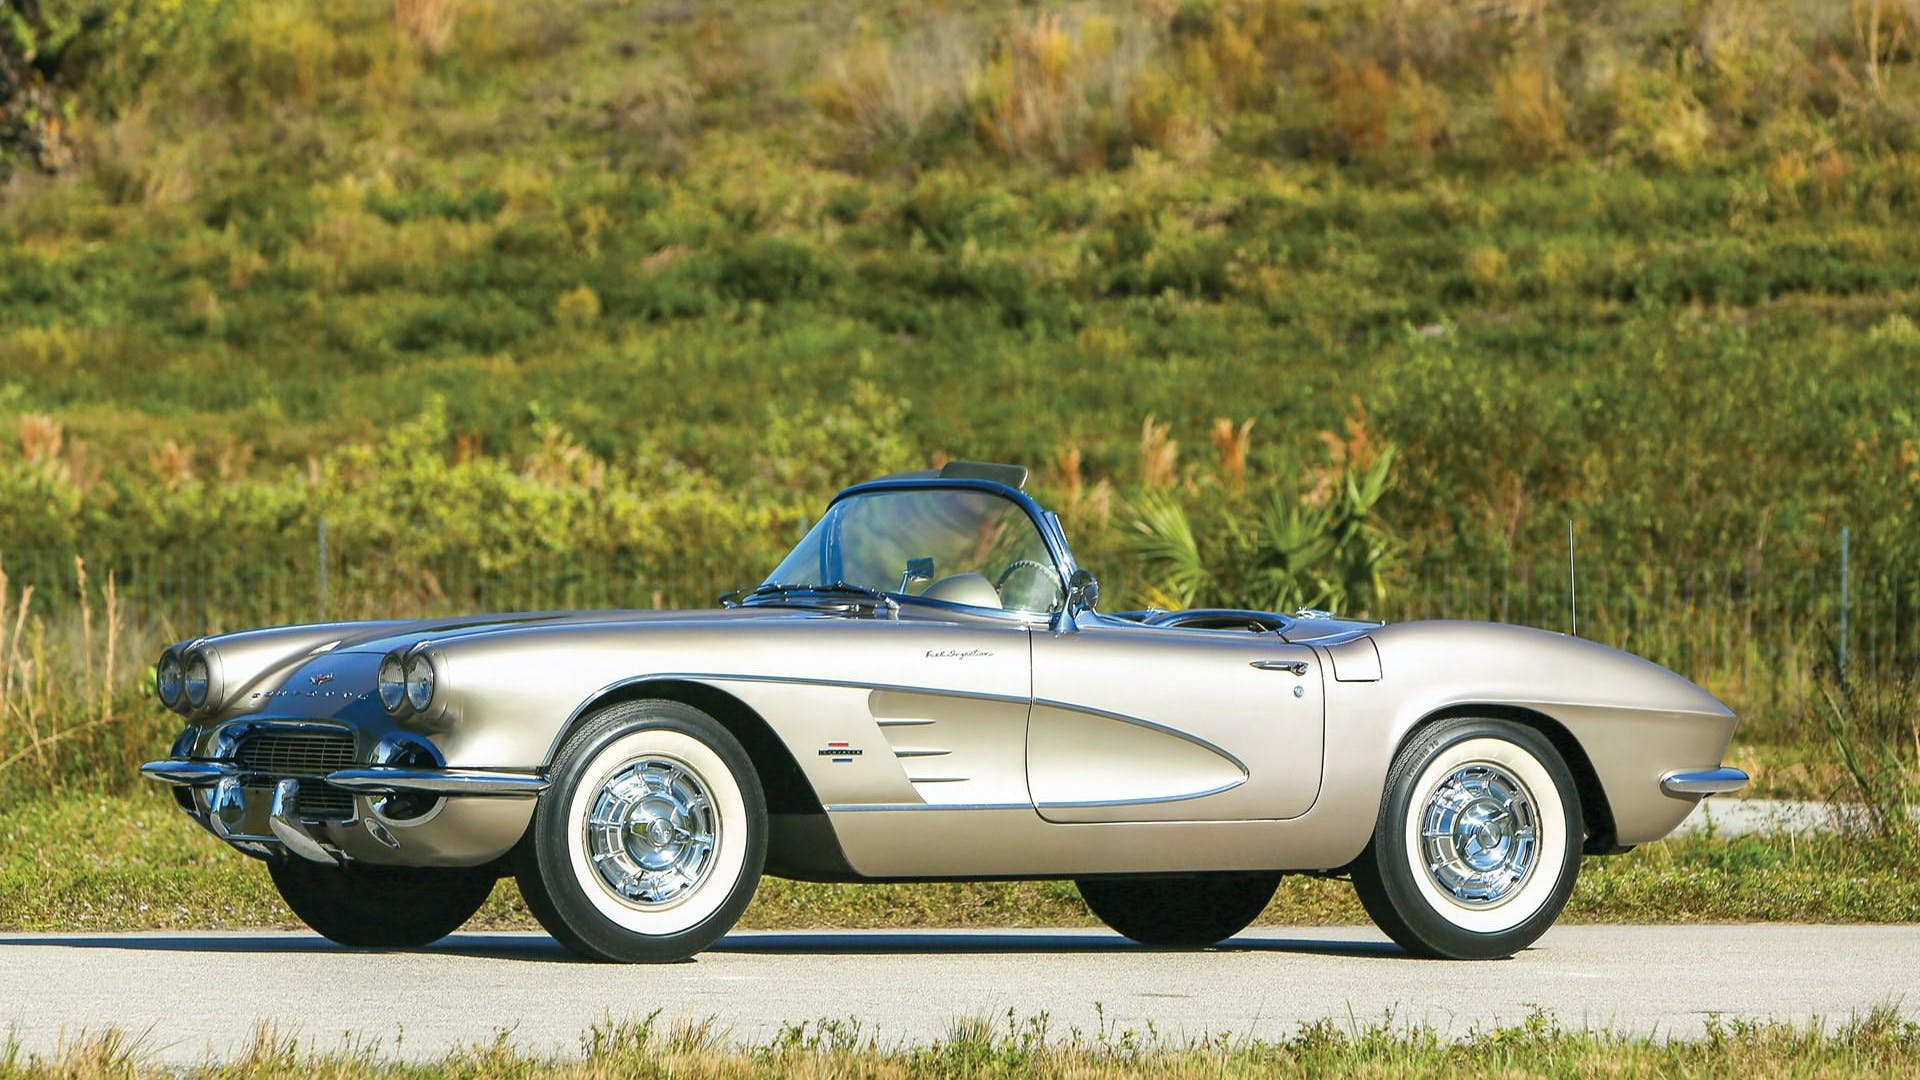 1961 Chevrolet Corvette 'Fuel-Injected'